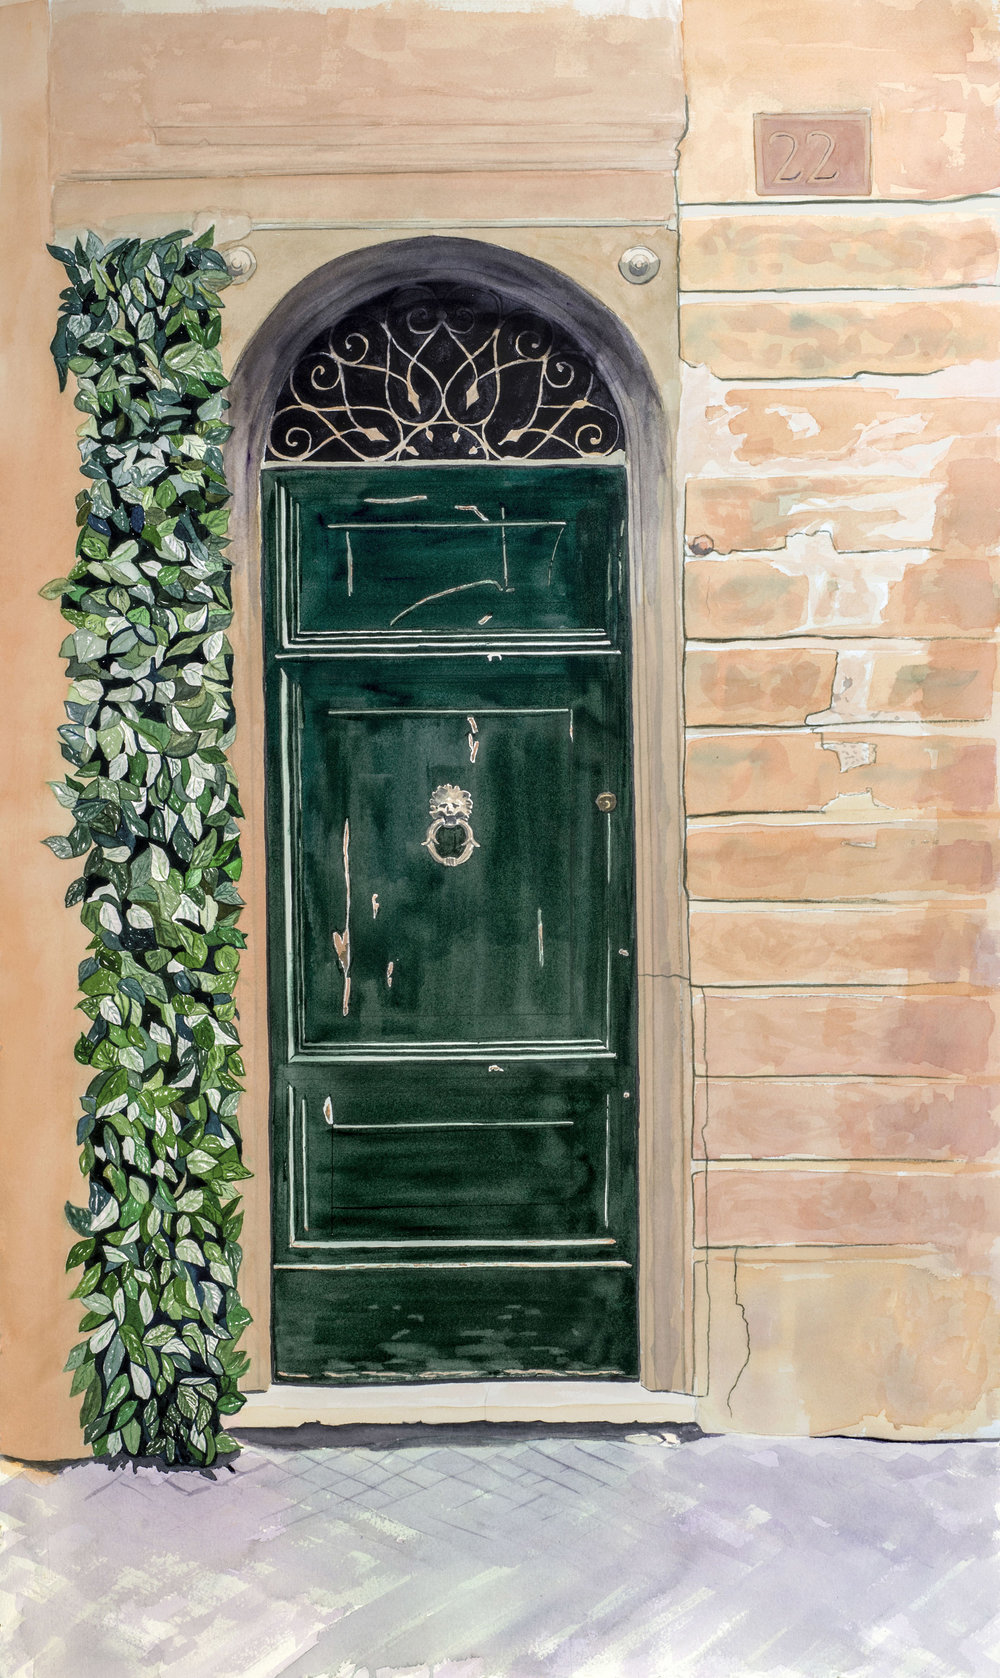 No. 22 da Vinci St., Rome, Italy.  Original and reproductions available.